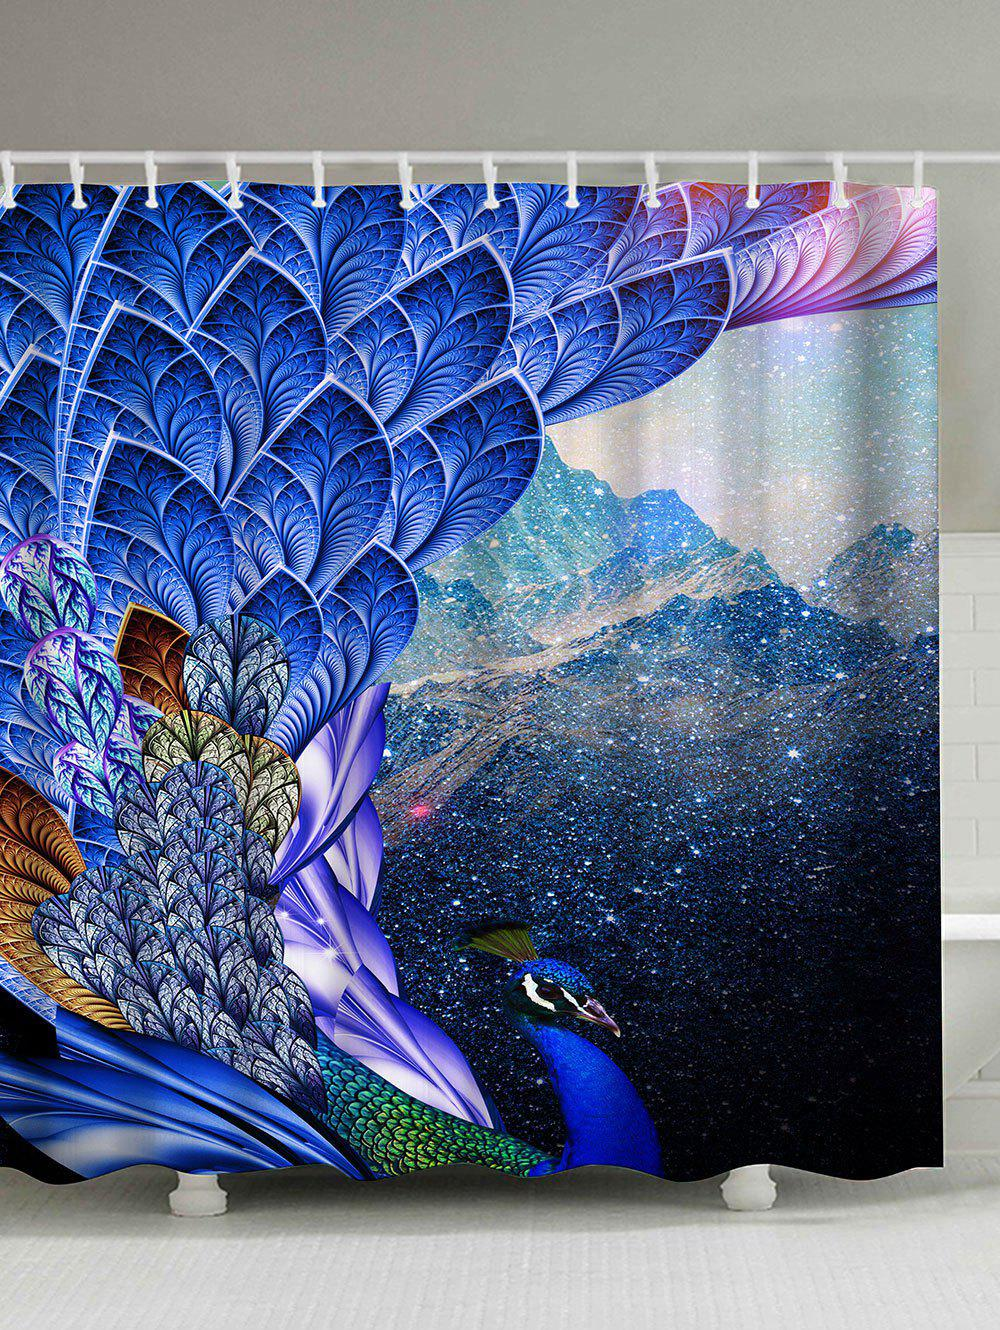 Mouldproof Waterproof Shower Peacock Print Curtain - BRIGHT BLUE 180*180CM